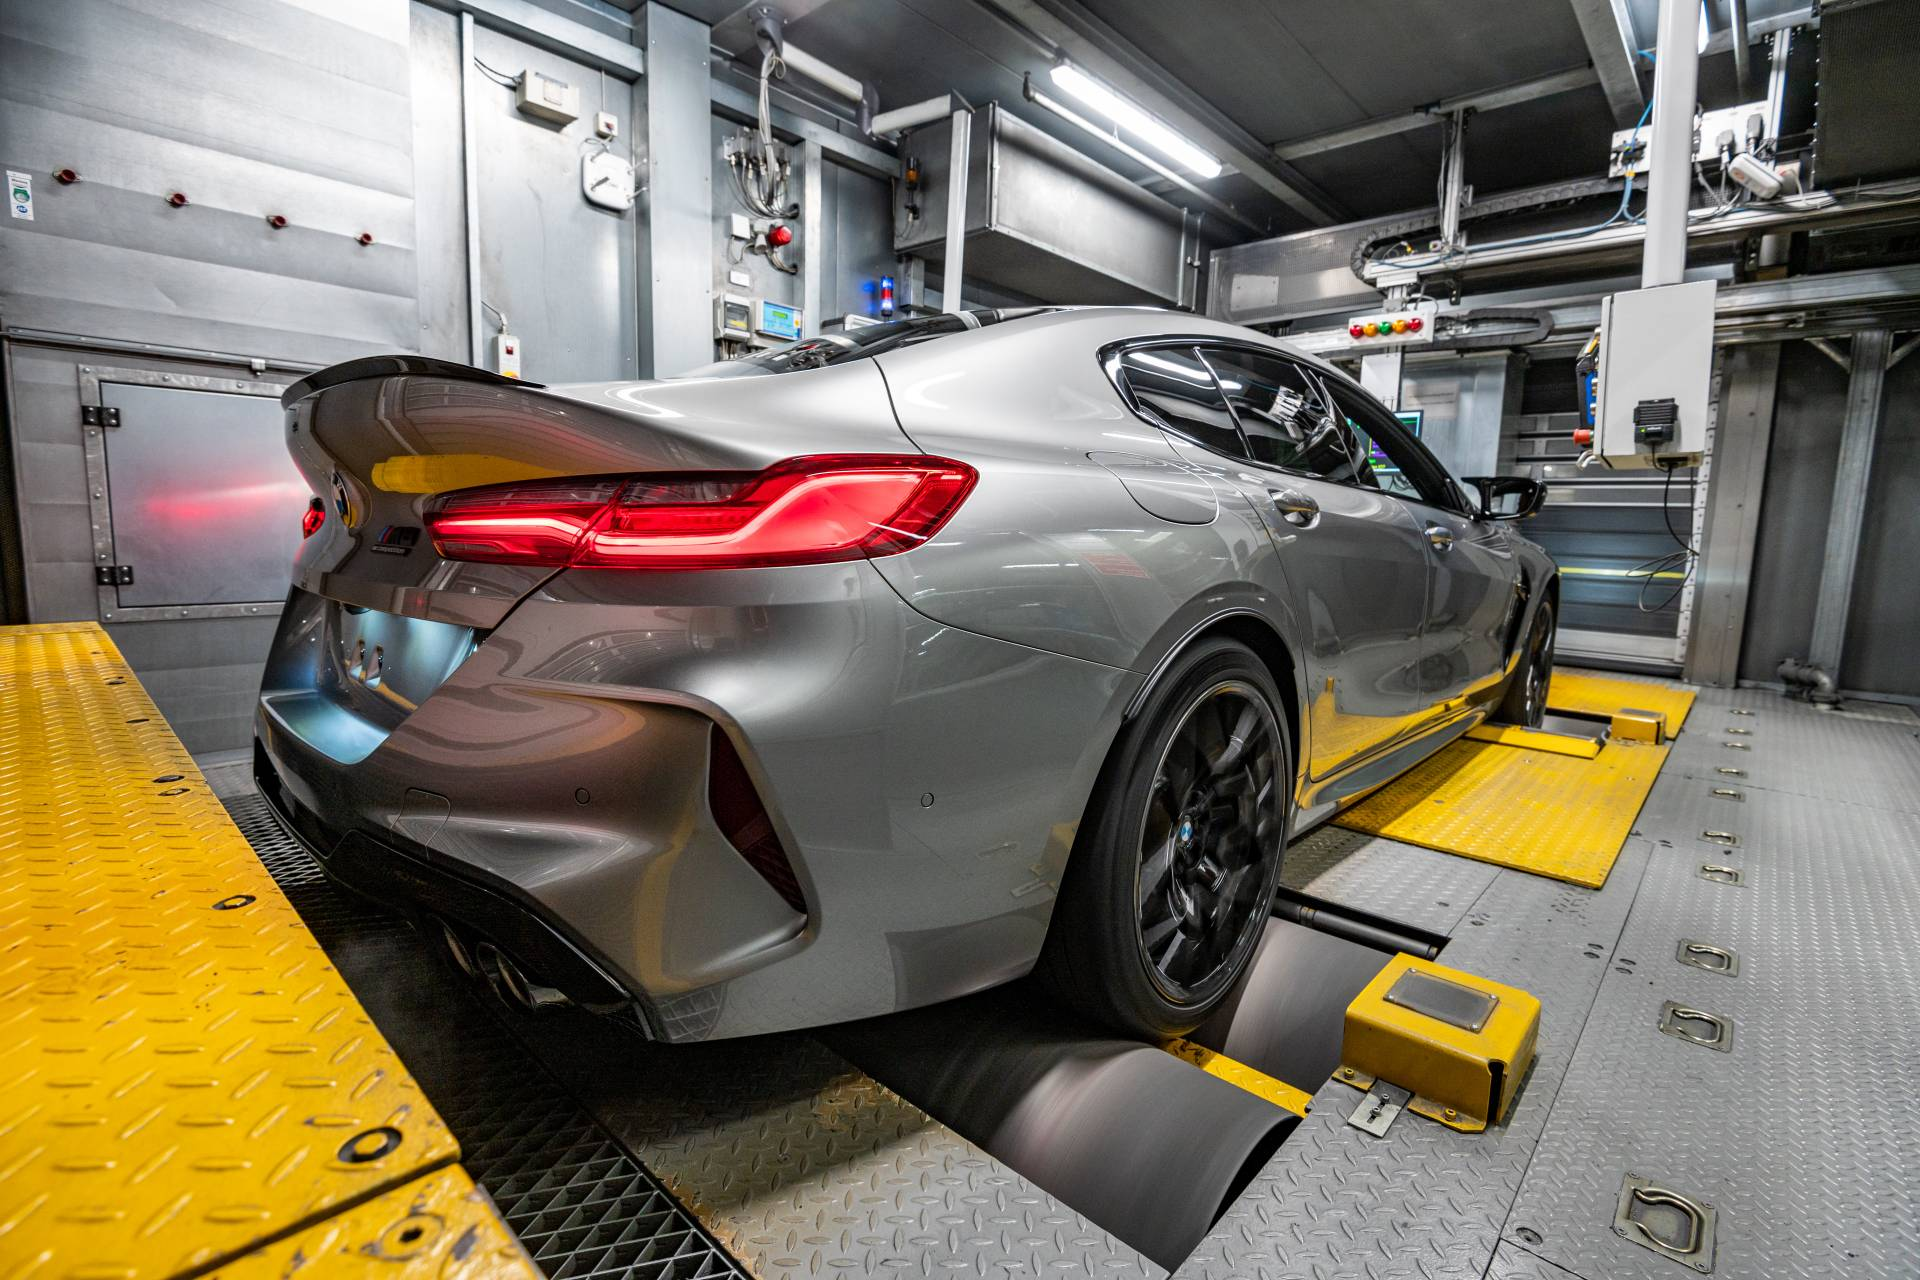 BMW-M8-Gran-Coupe-production-plant-factory-7